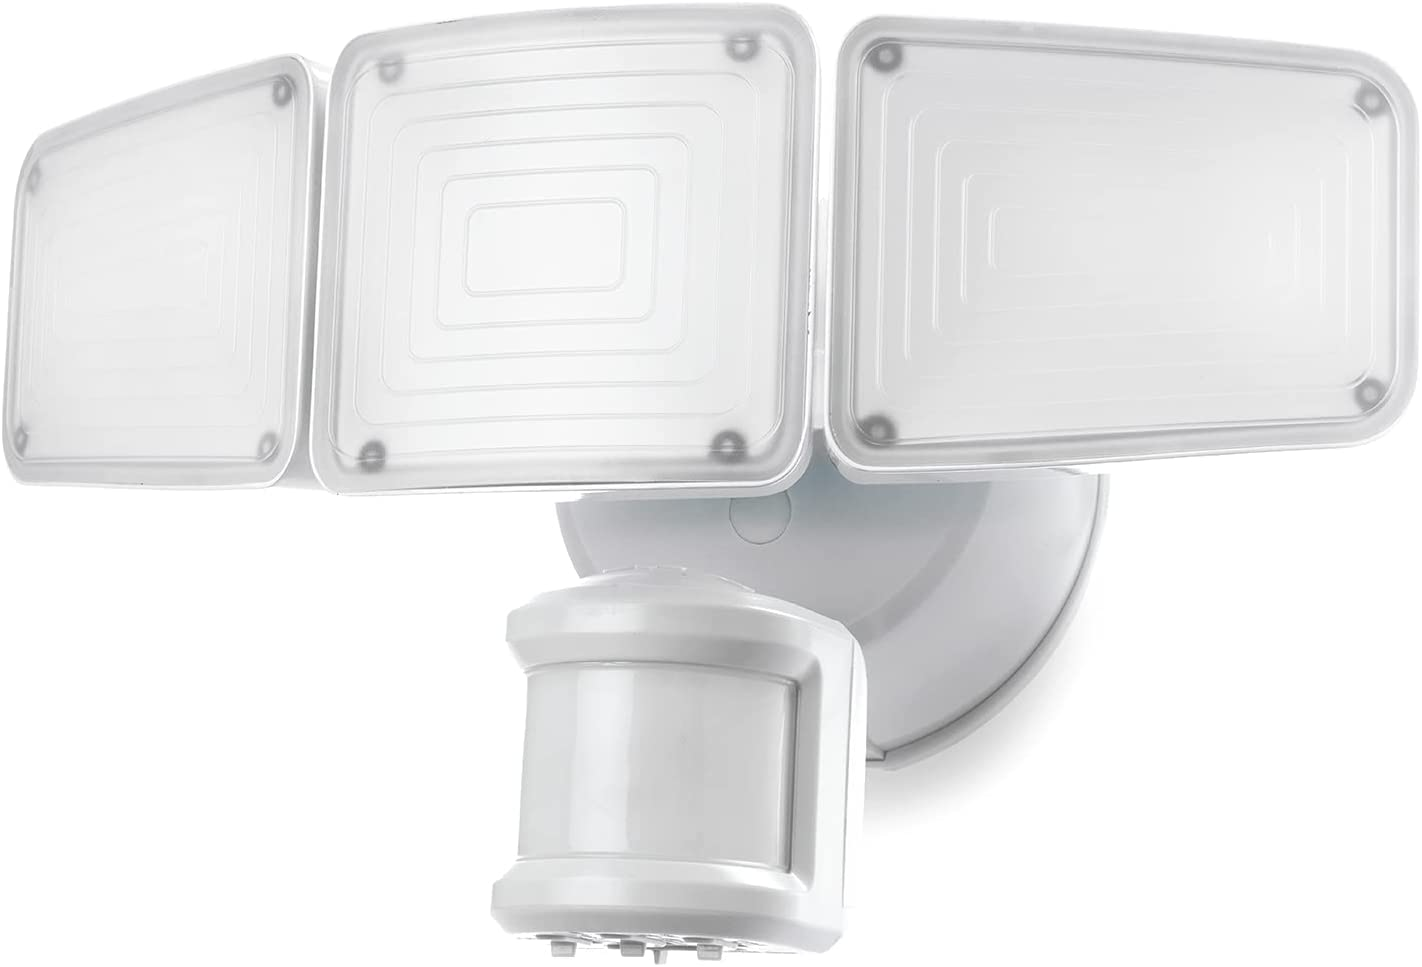 Home Zone Security 3500 Lumen LED Motion Sensor Light - Outdoor Weather Resistant Triple Head 5000K Security Light with Dusk to Dawn Mode and Easy Connect Back Panel, White